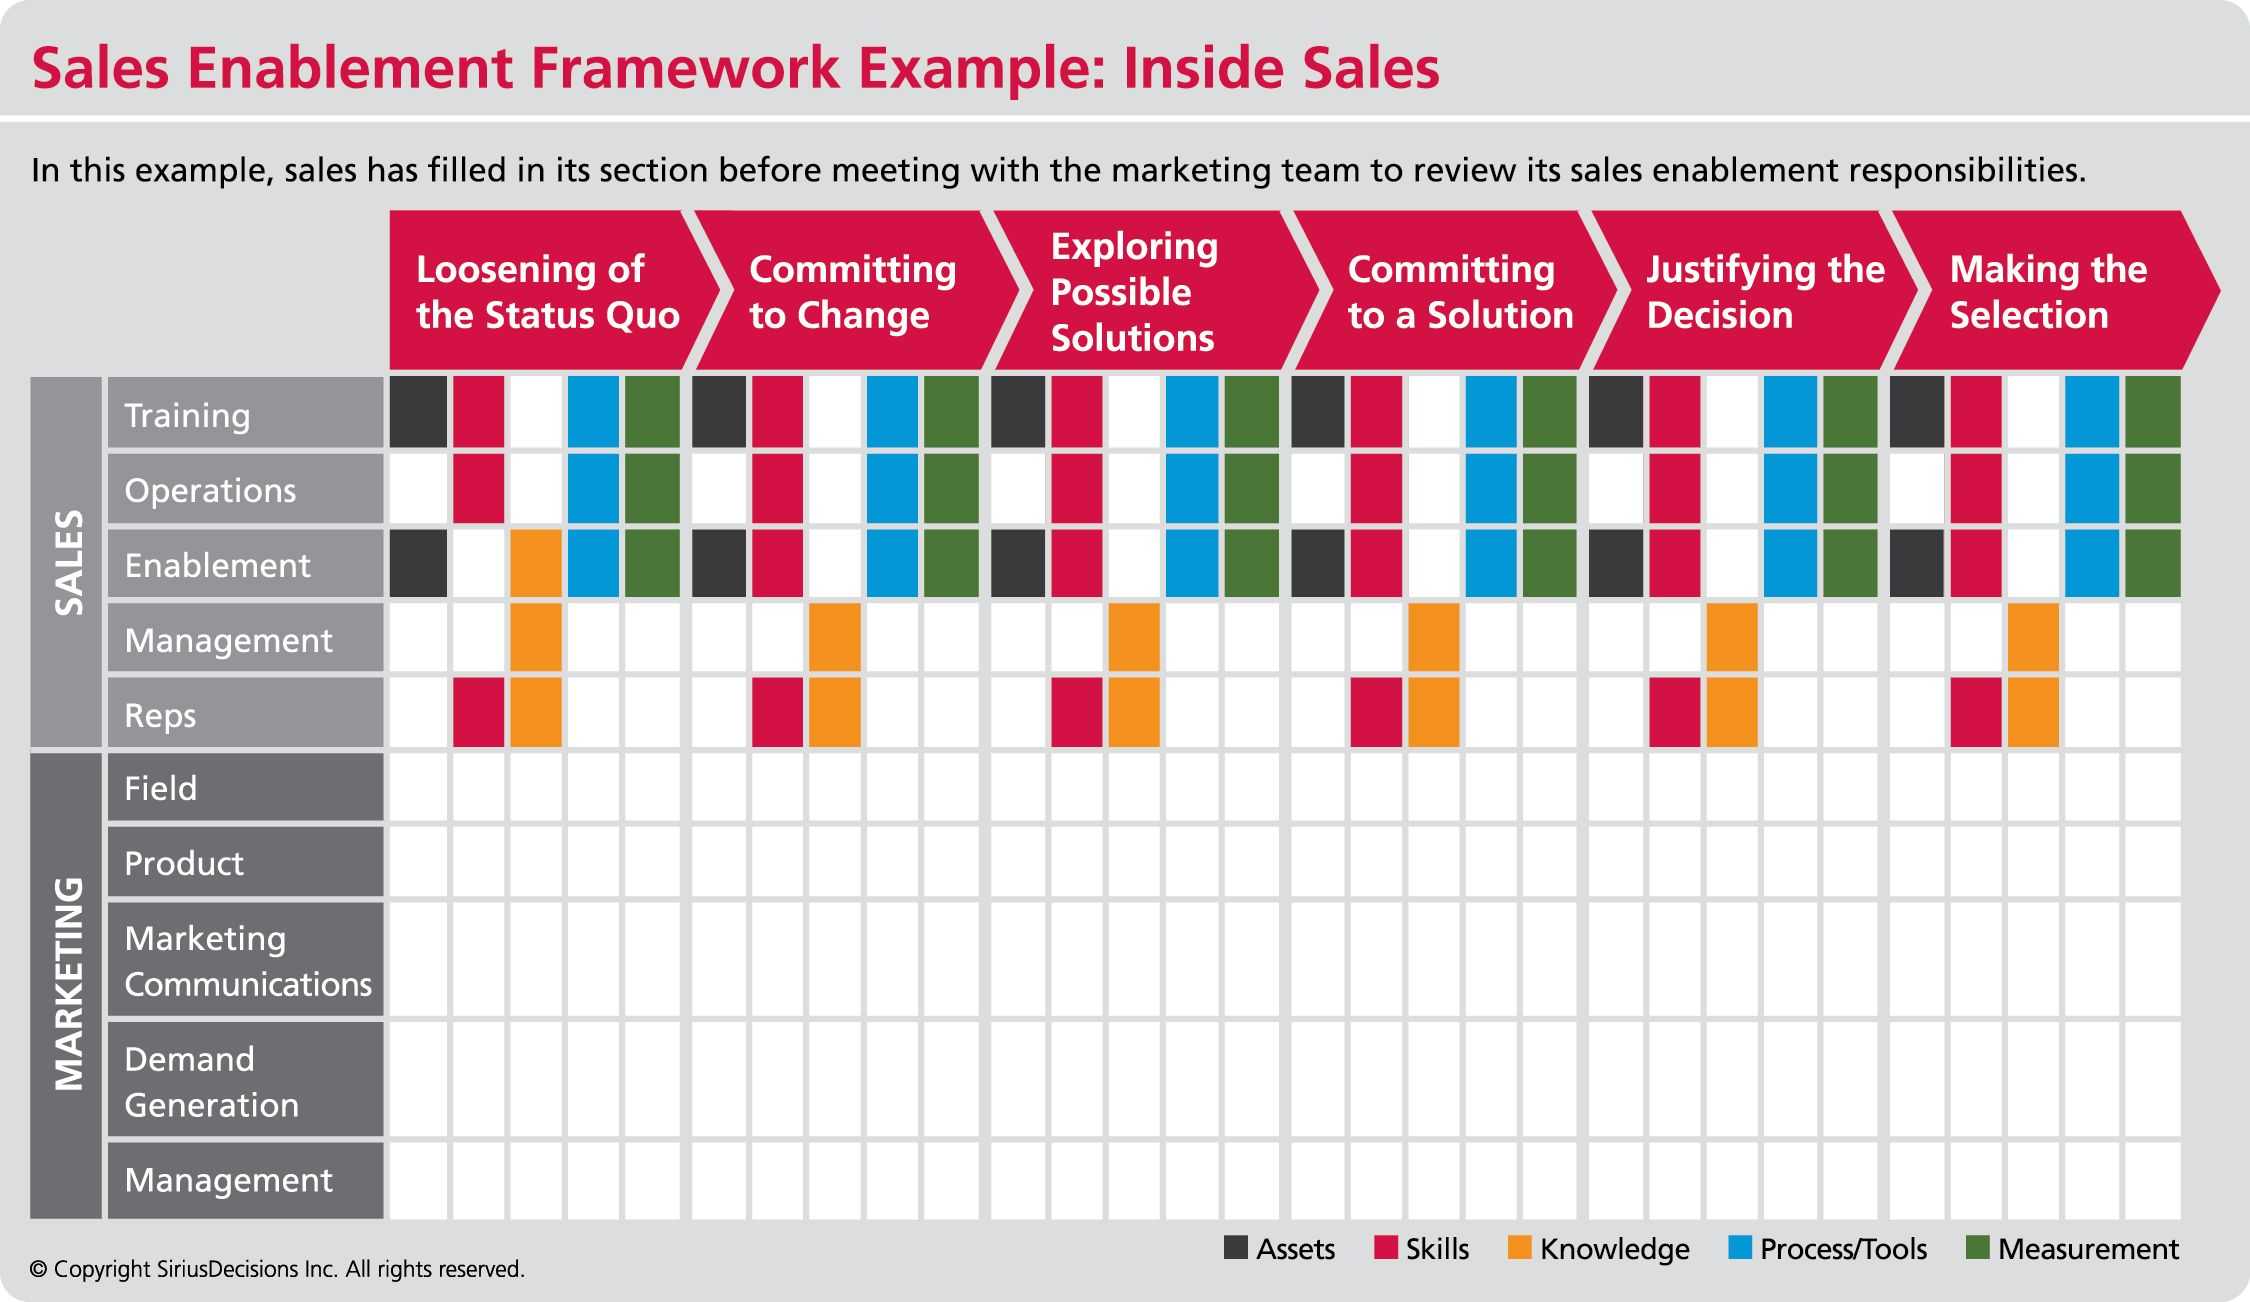 Siriusdecisions Sales Enablement Execution Framework Download